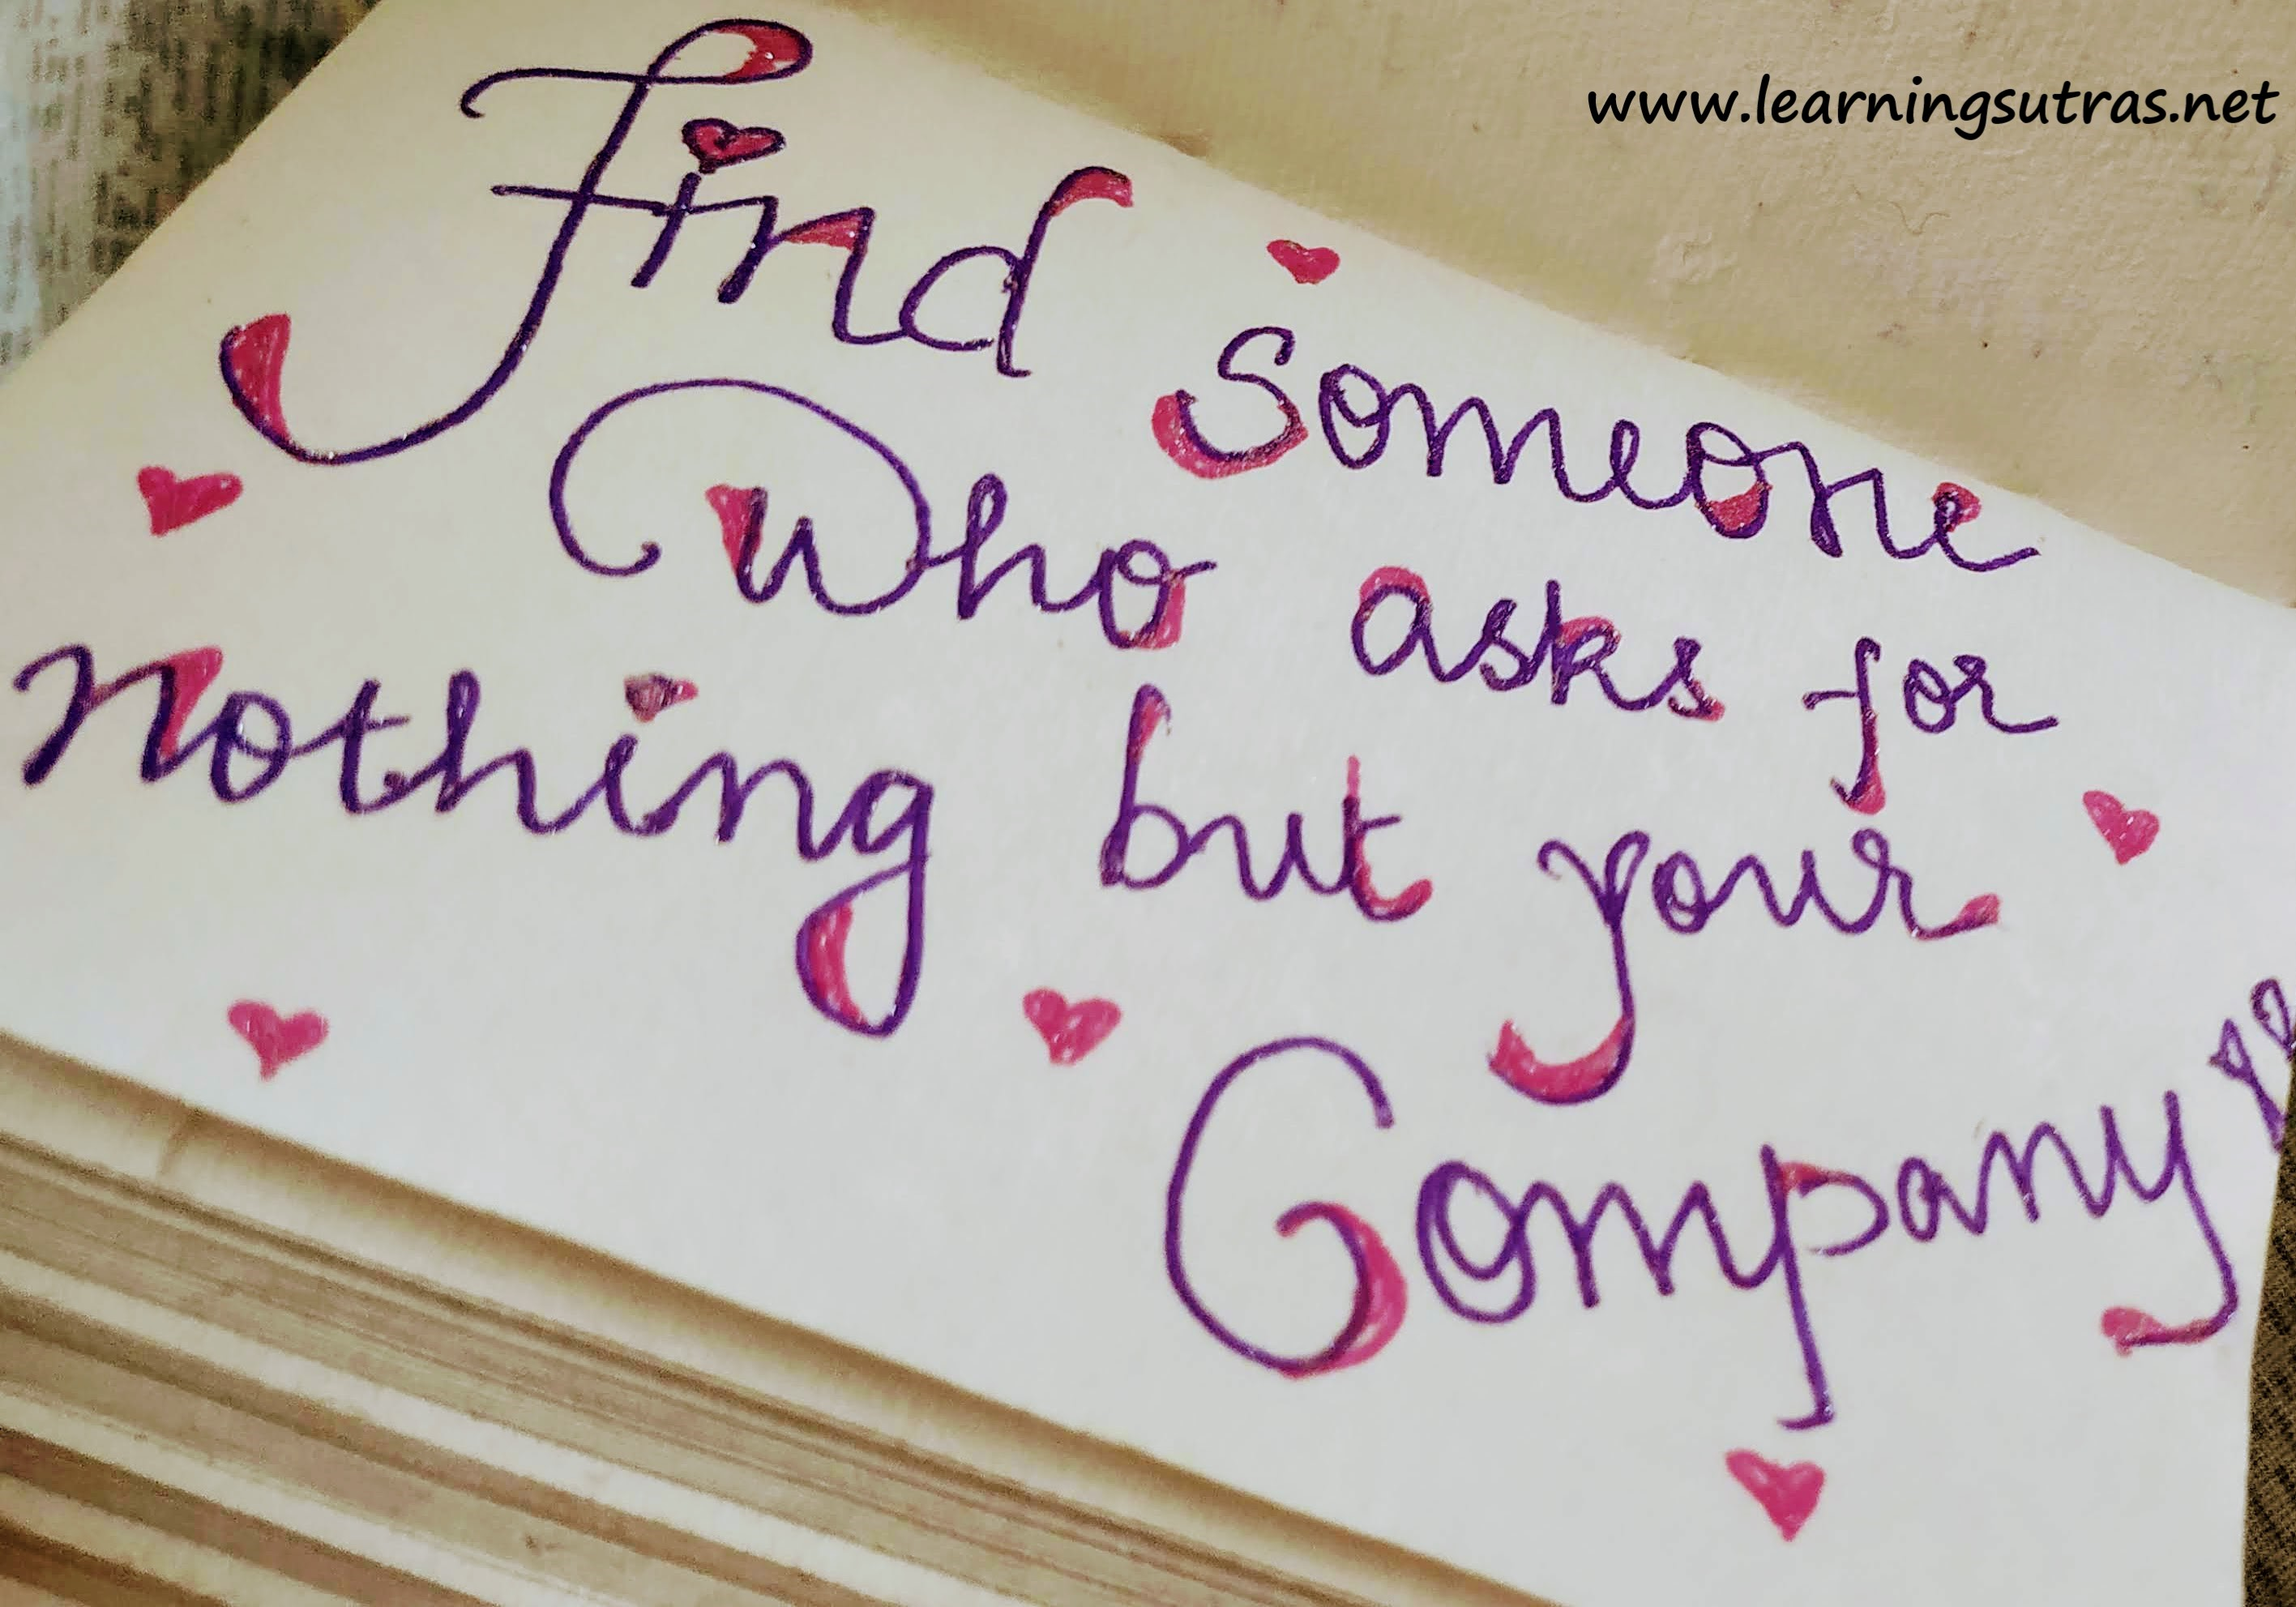 Relationship Quotes - Learning Sutras